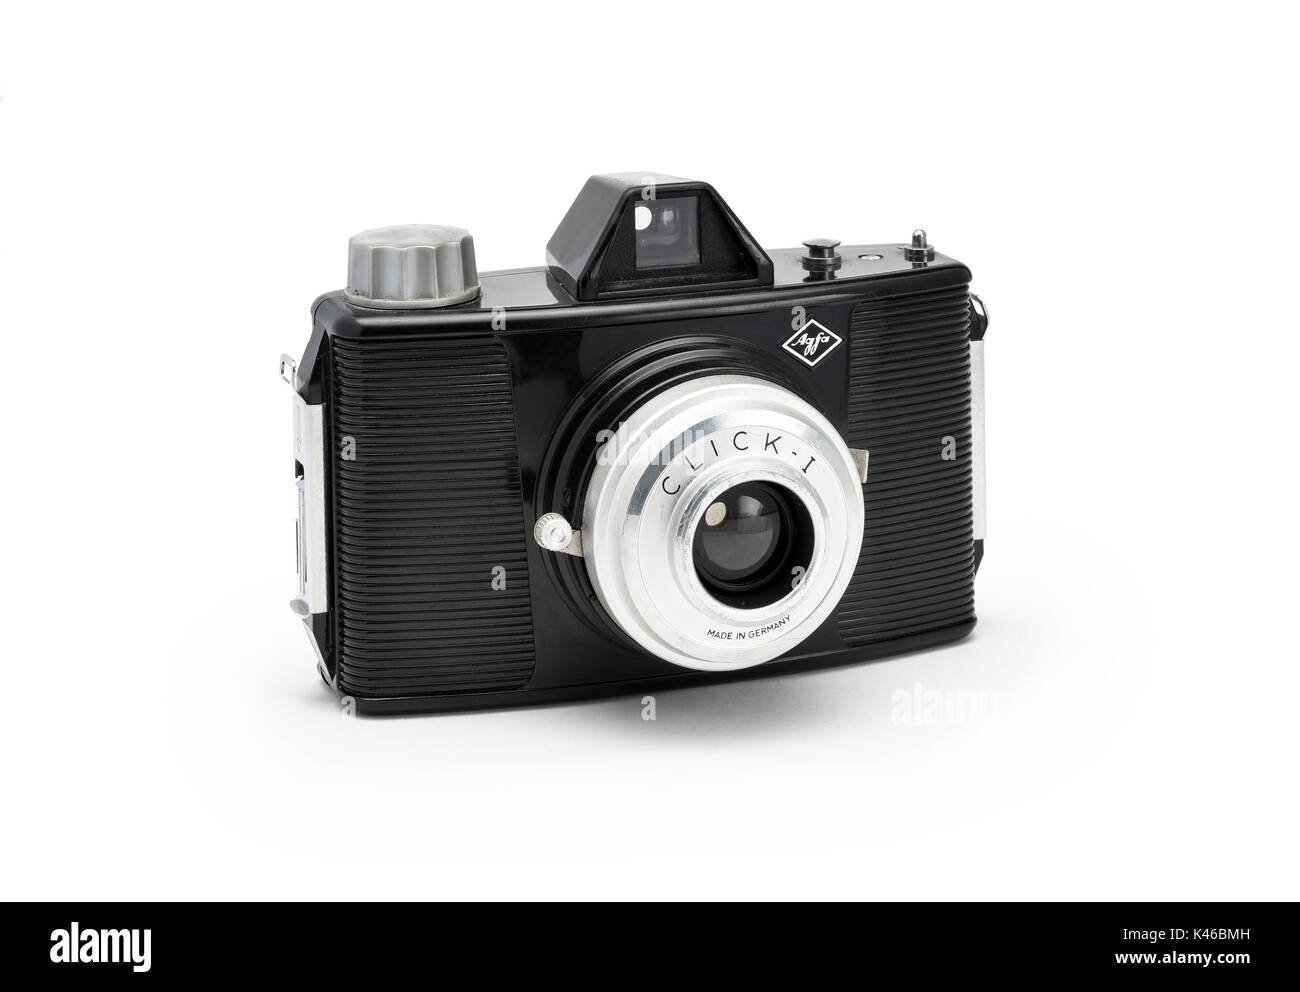 Vintage Agfa 'Click' film camera from the early 1960's - Stock Image